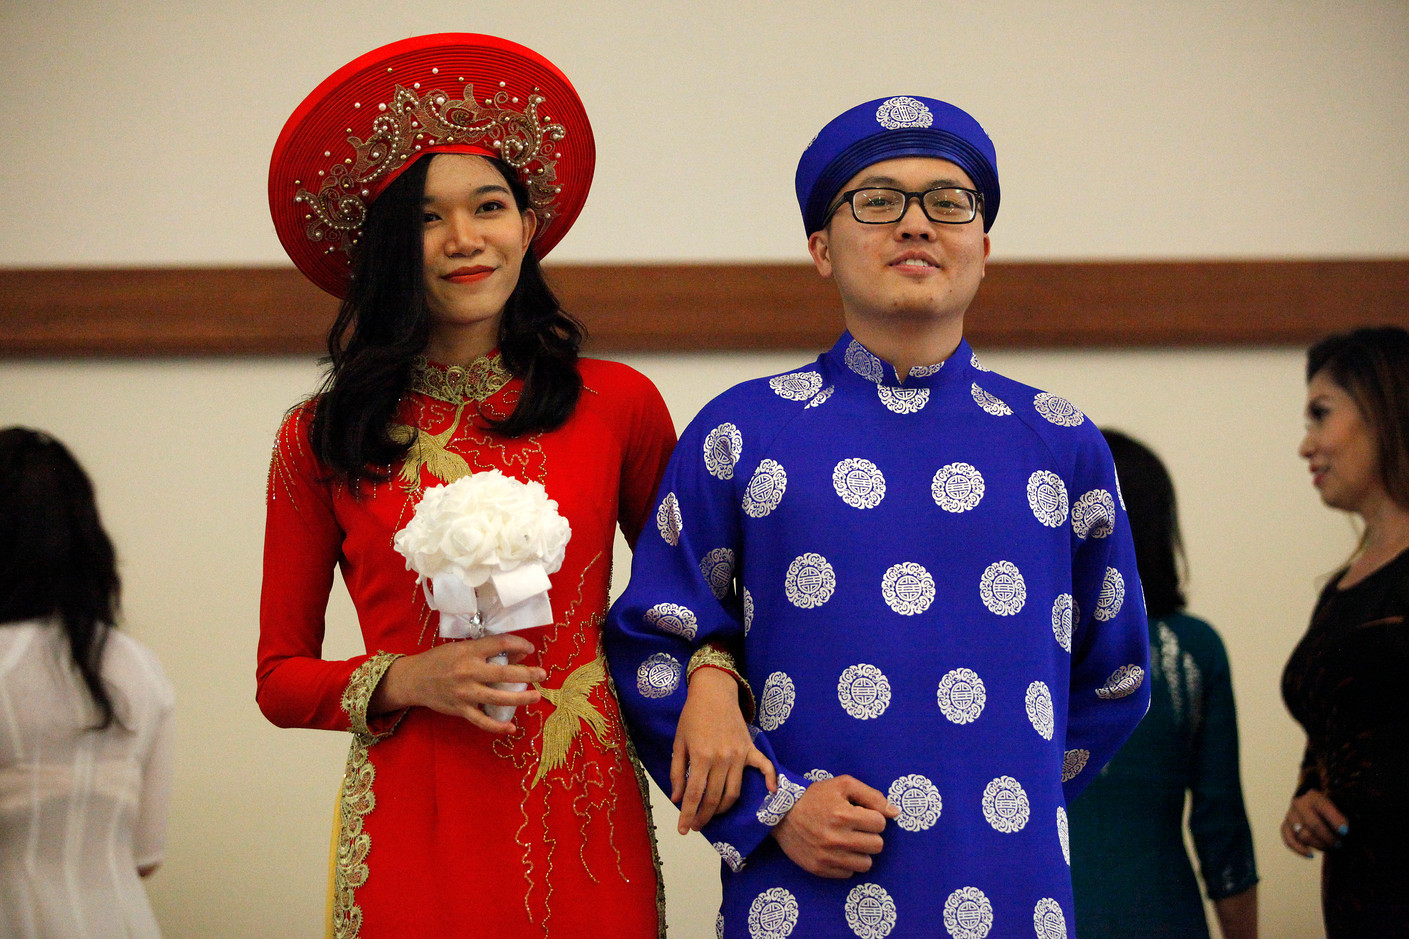 Participants in the 27th annual World Refugee Day, hosted at the Campbell Community Center, model traditional Vietnamese wedding garments in an ethnic clothing fashion show on June 14.